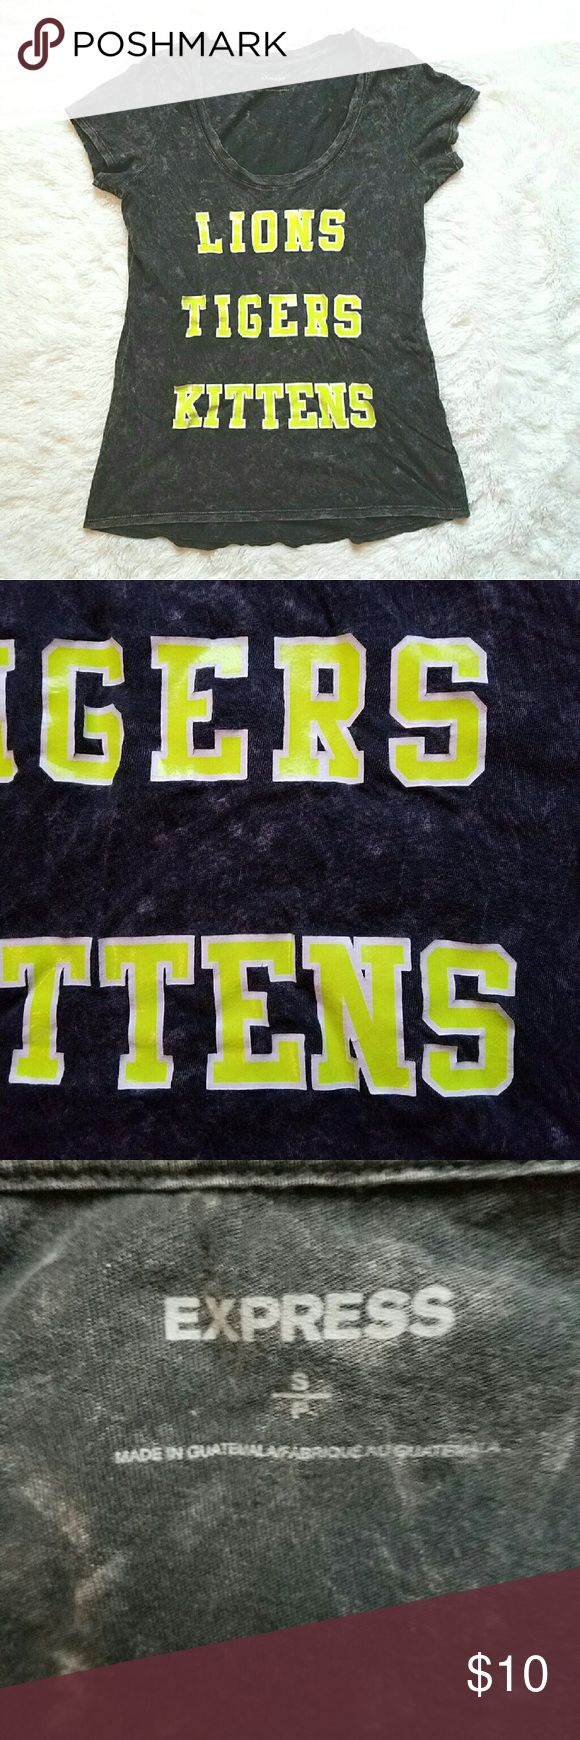 {Express} Lions & Tigers & Kittens Tee Lions and Tigers and Kittens, oh my!   This Express space-dyed tshirt is perfect for the adorable cat lady, or fans of the Detroit Lions or Tigers. It's a slightly looser fit, lightweight material gray t-shirt. Neon yellow/green lettering with white. Great condition, though has been washed several times (never dried). A couple letters have slightly begun to crack/peel at edges, but you can't tell unless you're an inch away.  Such a fun everyday top!  I…